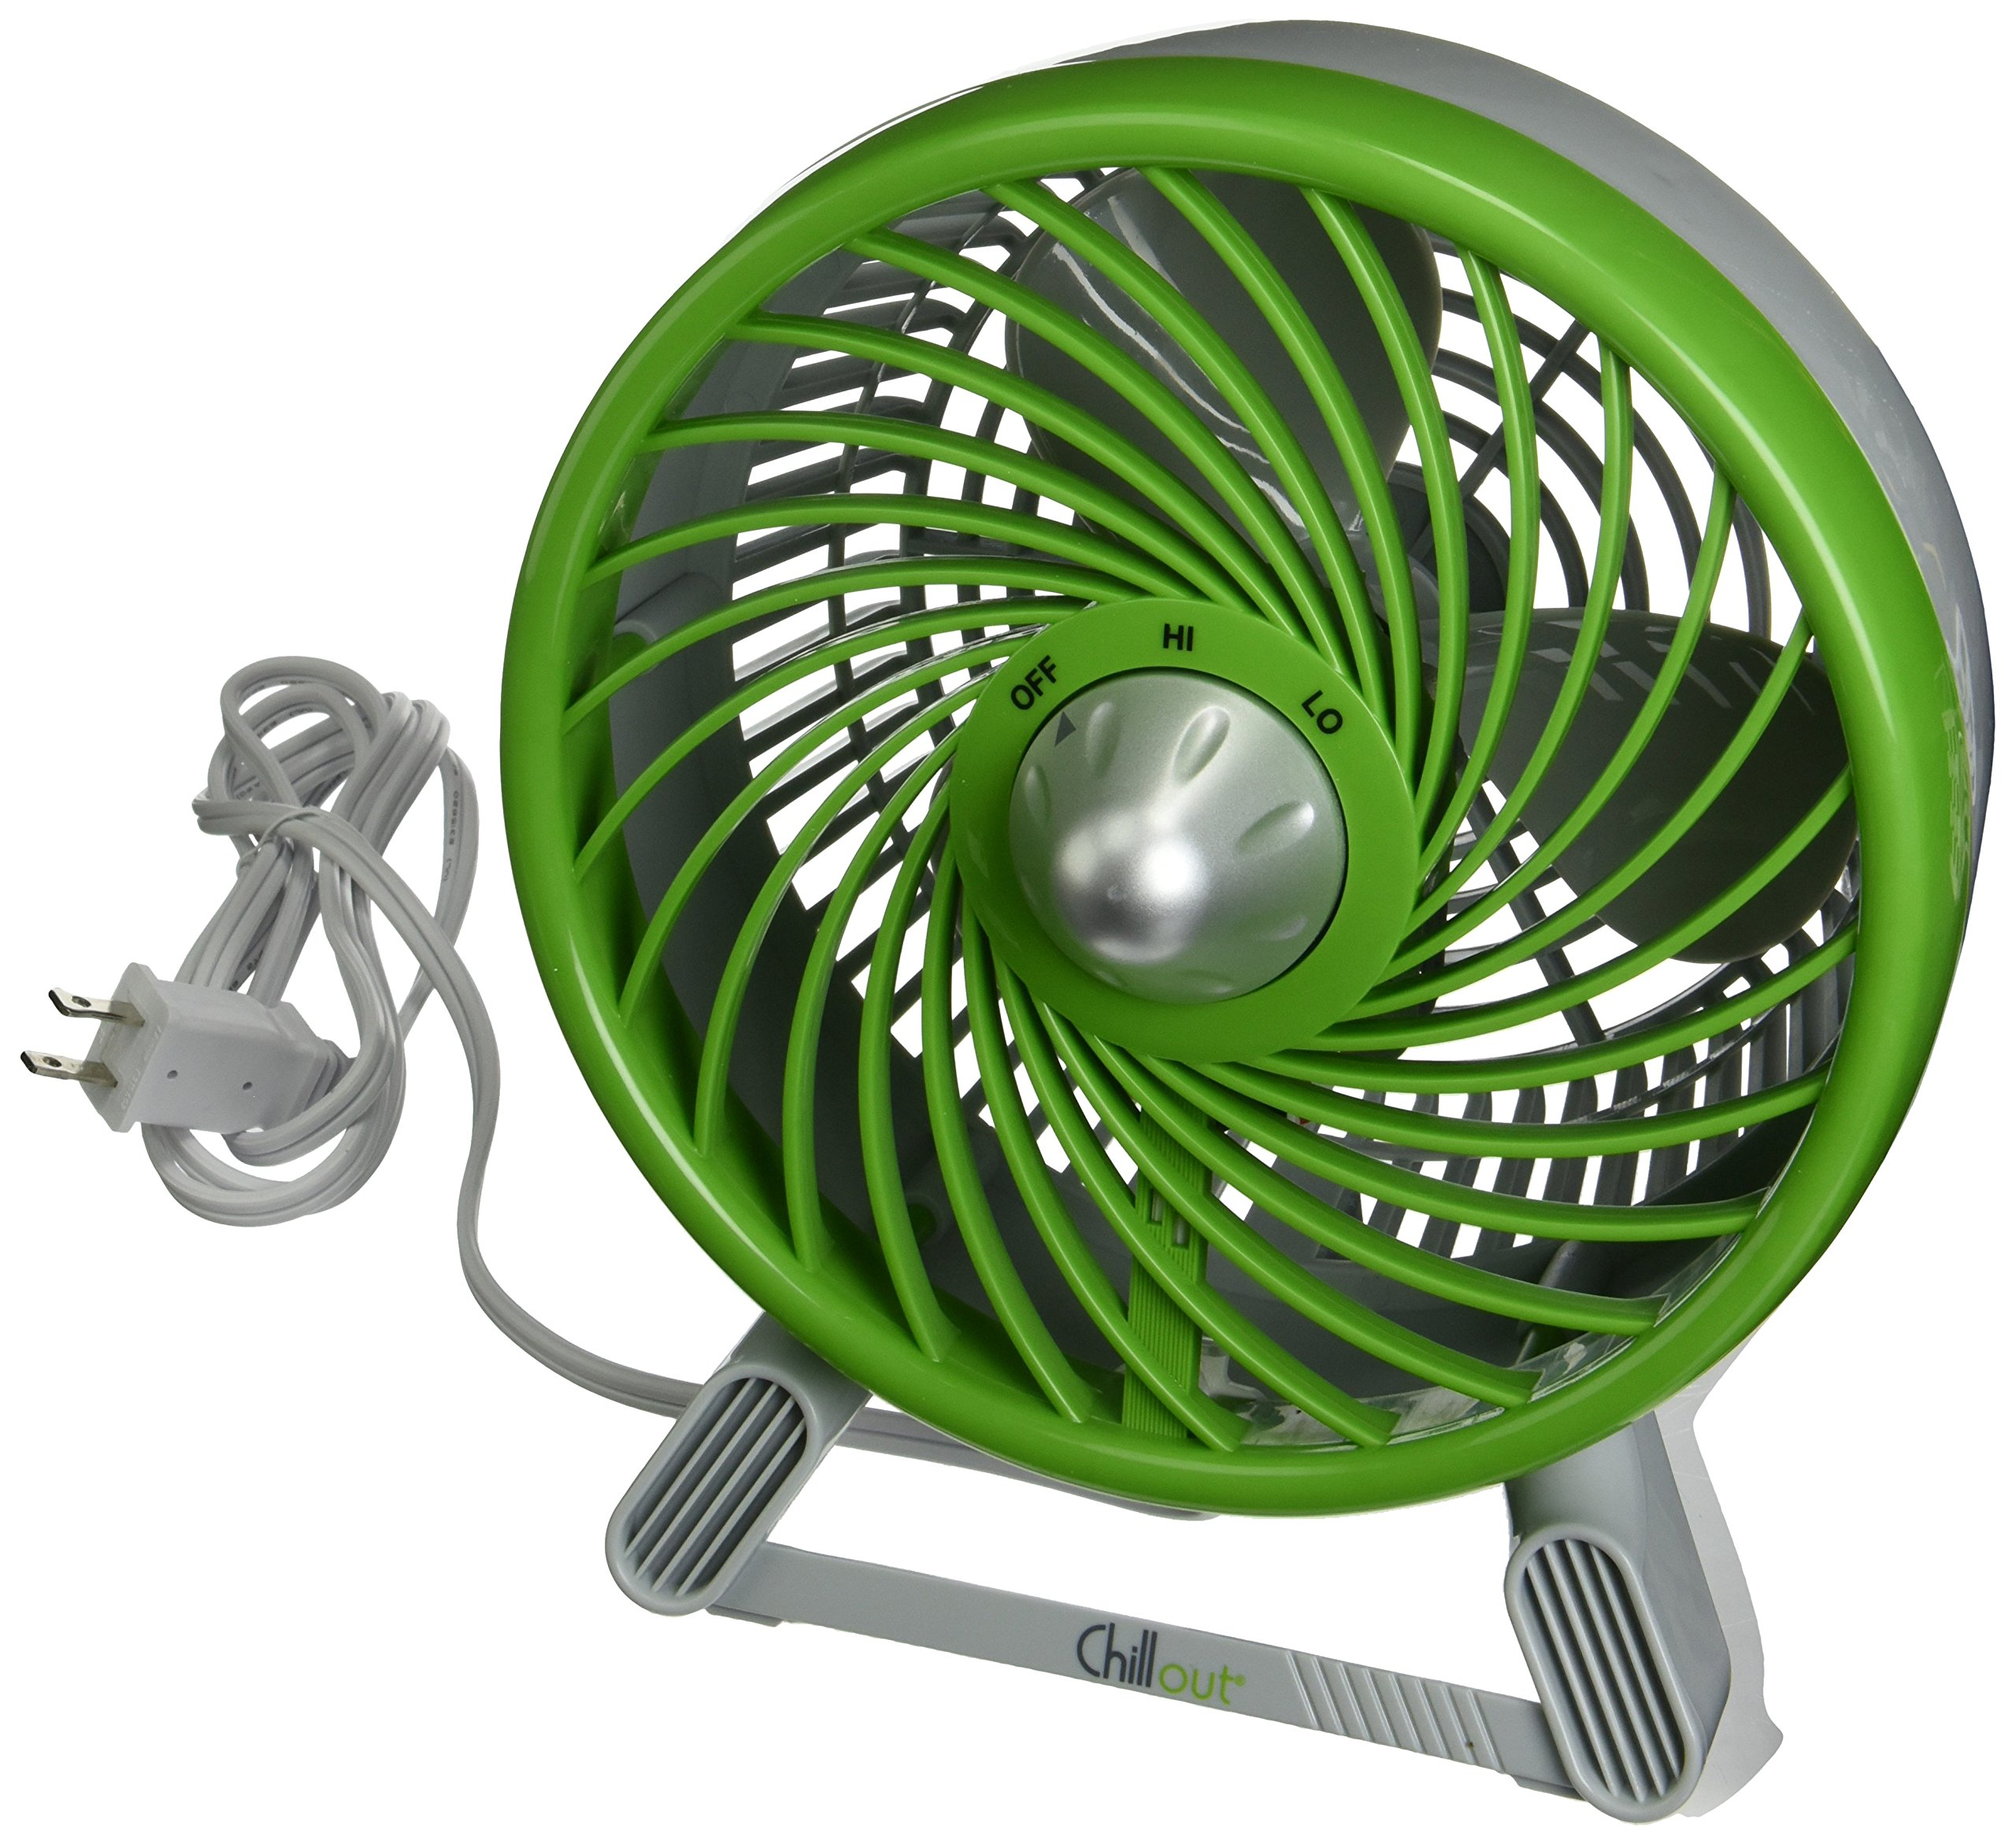 Chillout 2-Speed Personal Fan